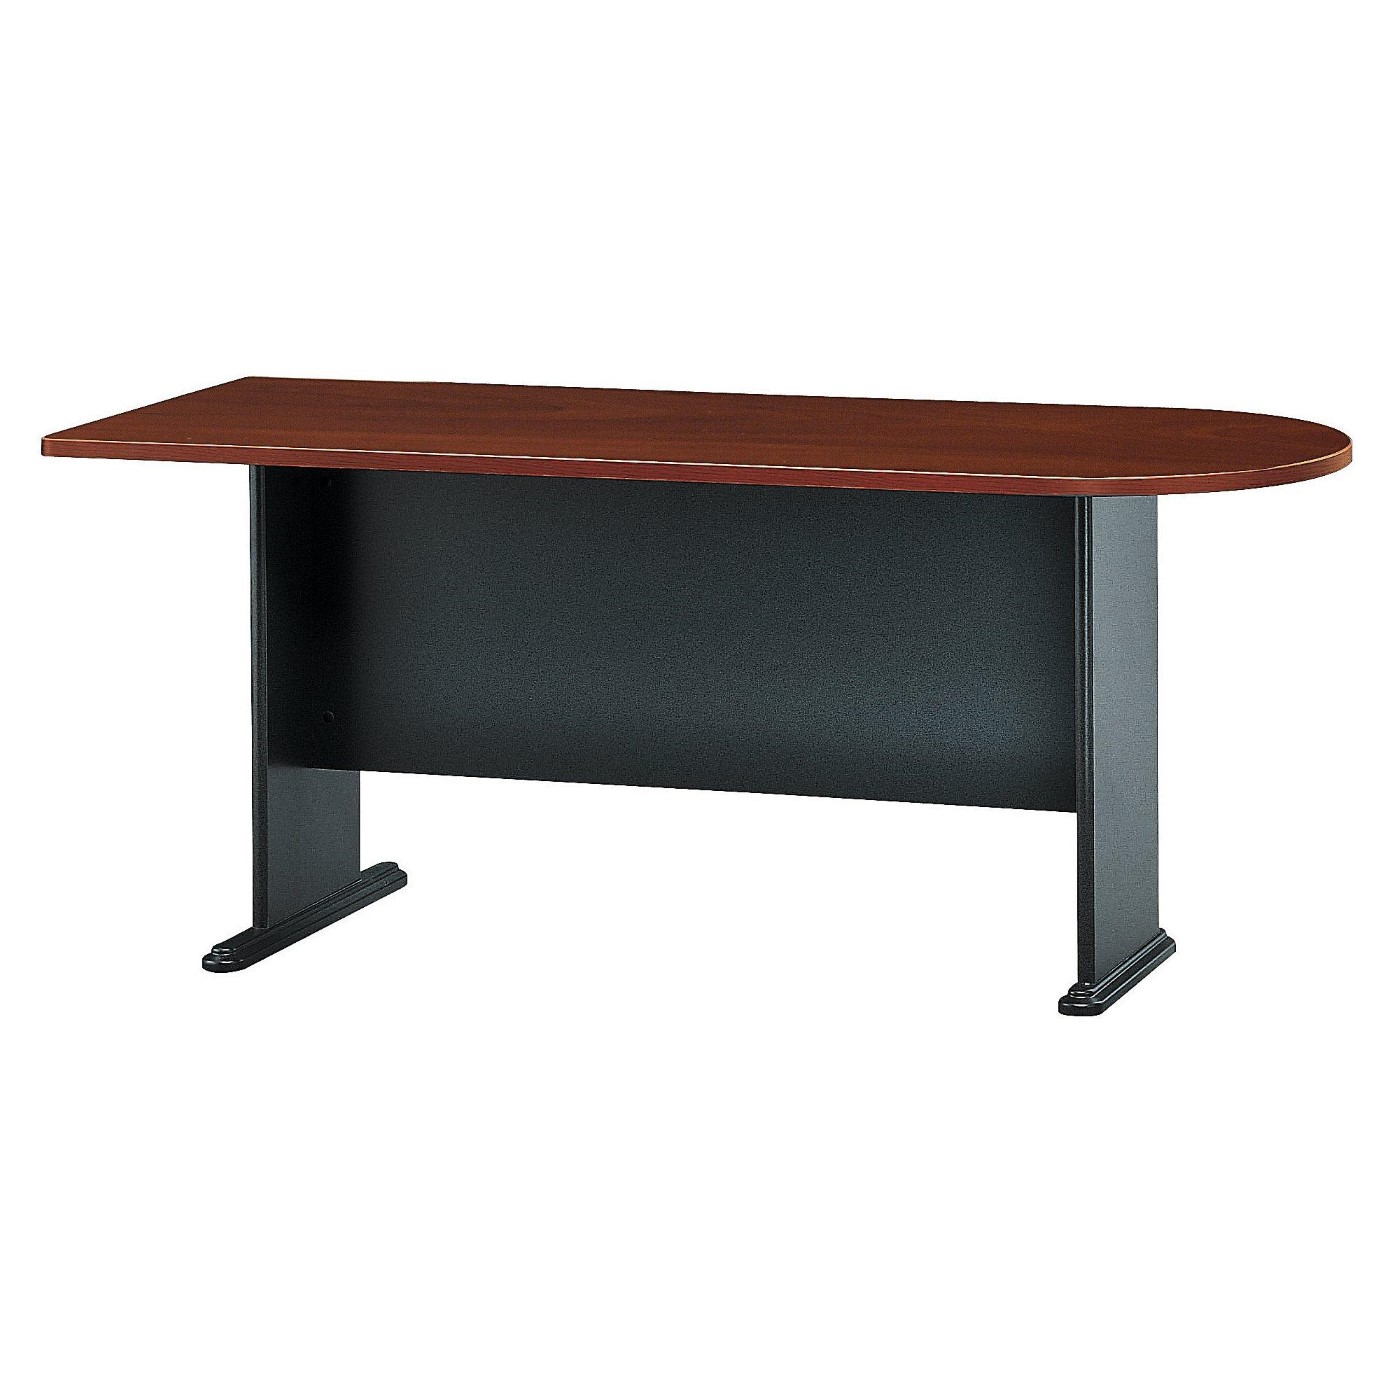 <font color=#c60><b>BUSH BUSINESS FURNITURE SERIES A 72W UNIVERSAL FREESTANDING PENINSULA. FREE SHIPPING</font></b></font></b>